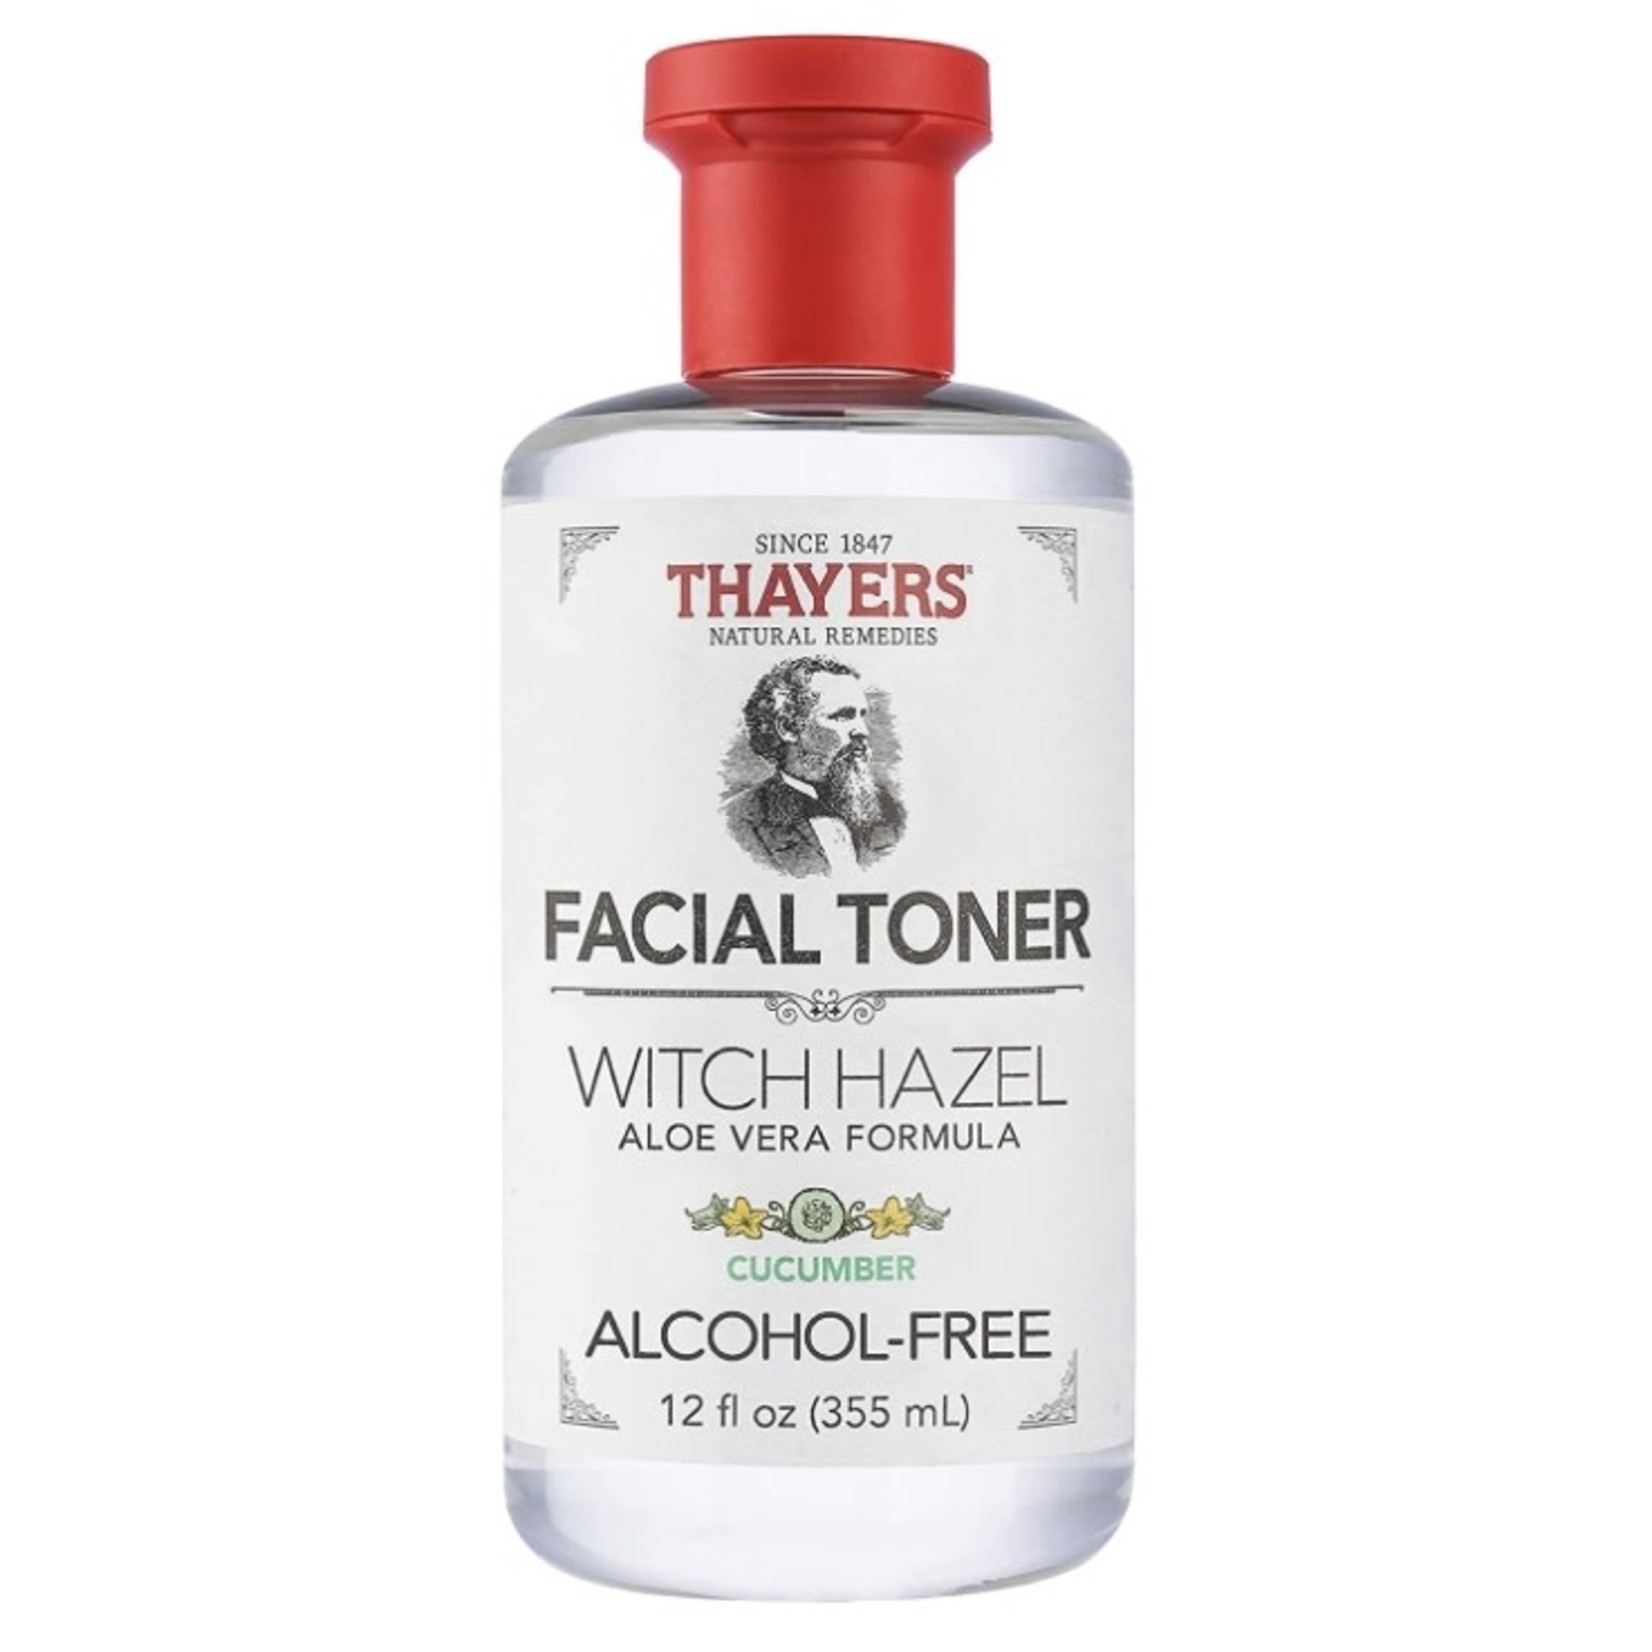 Thayers Thayers Witch Hazel Cucumber Facial Toner 355ml